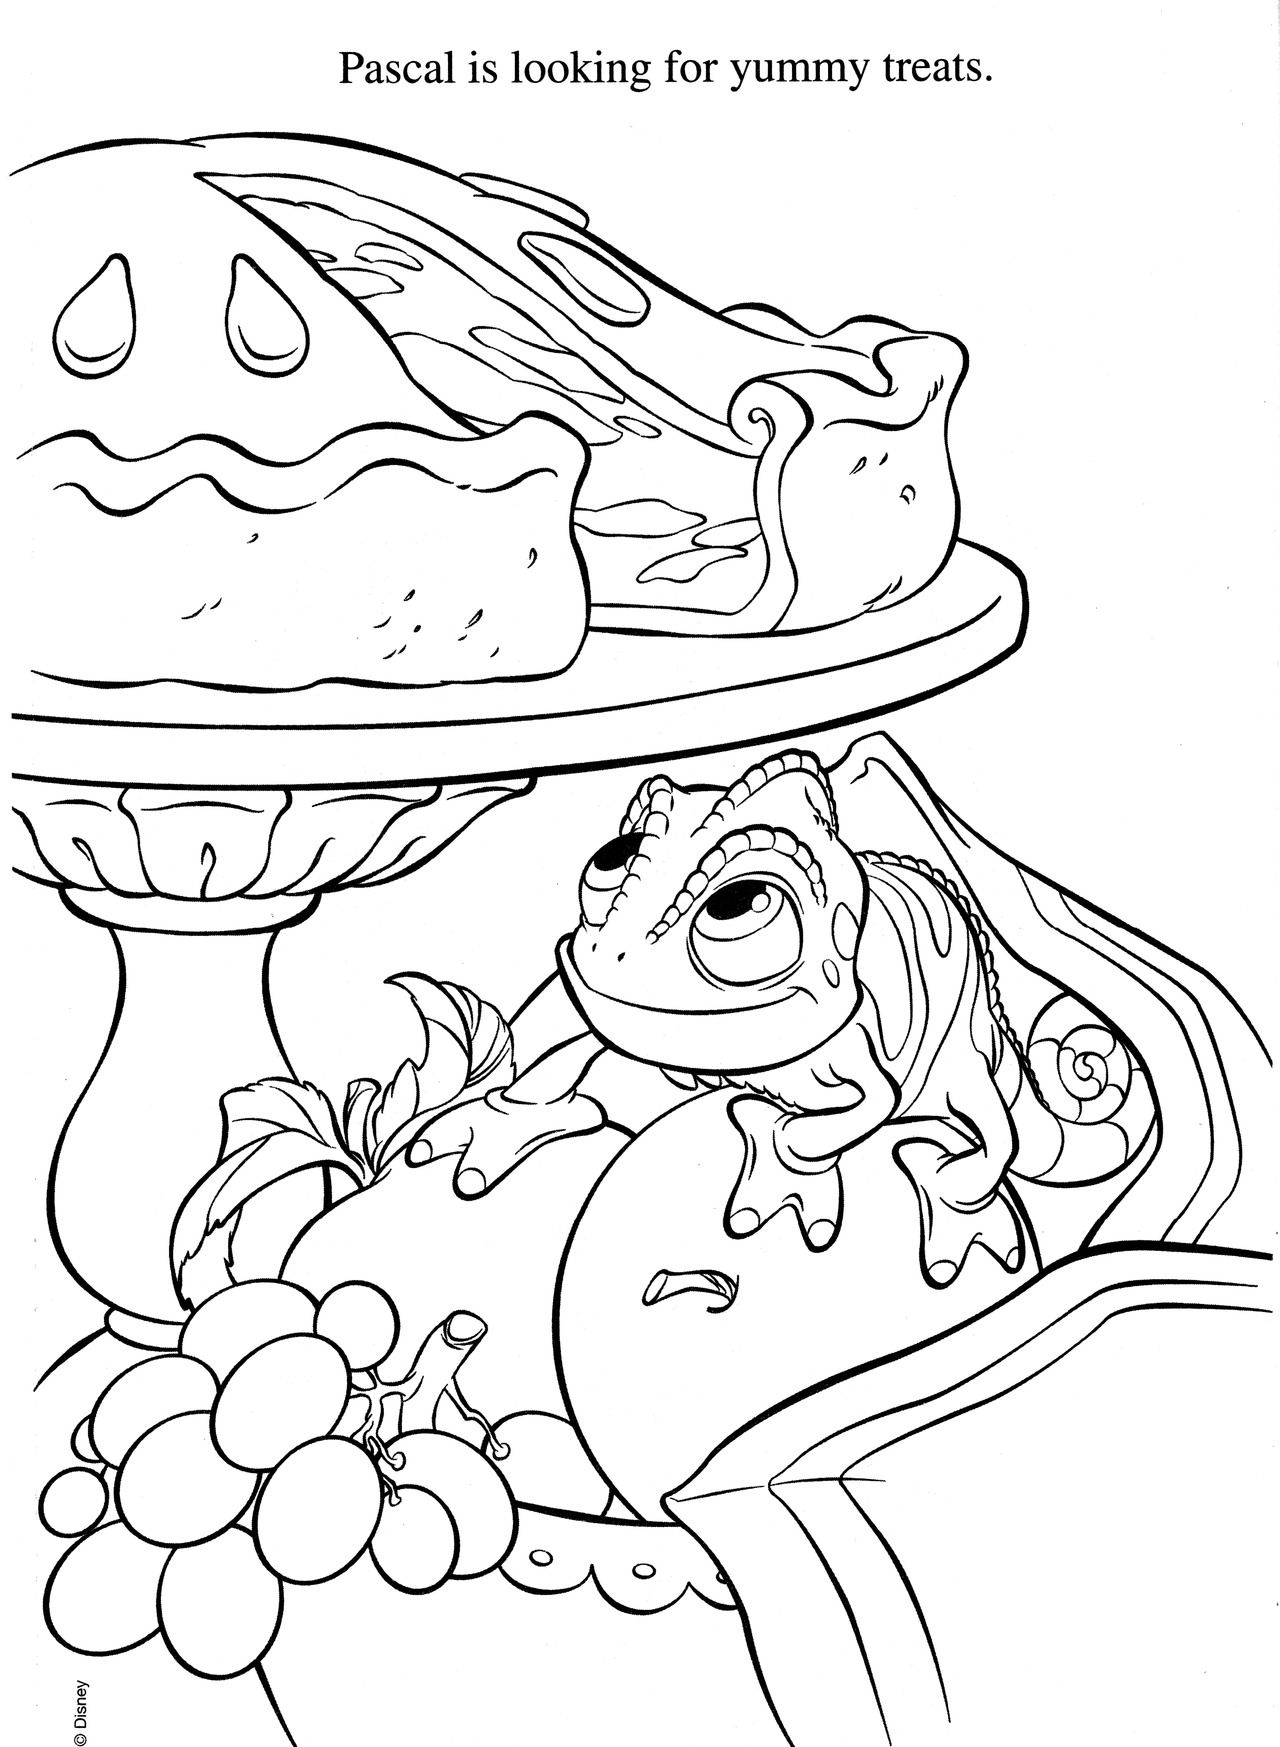 Pin By Kathleen Shirfrin On Coloring Pages For Children Of All Ages Tangled Coloring Pages Disney Coloring Pages Rapunzel Coloring Pages